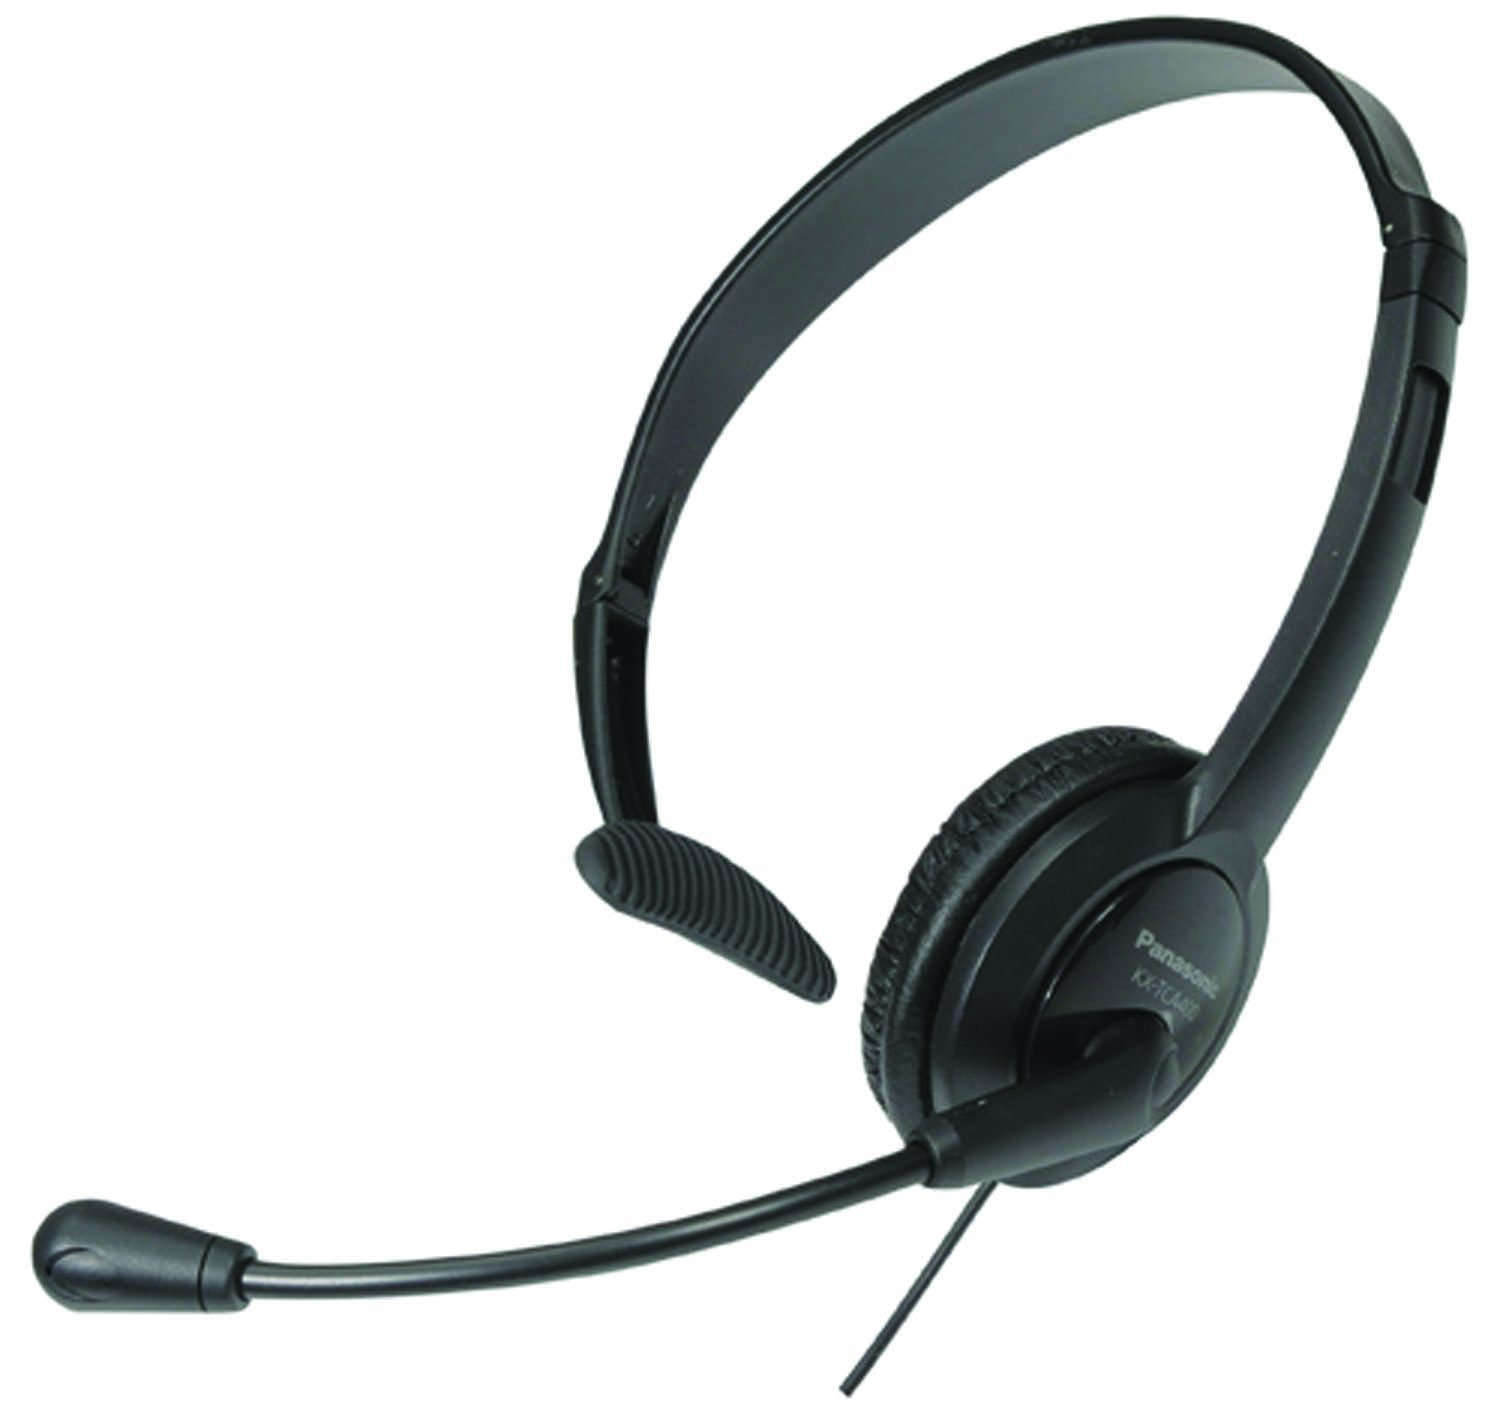 New! Universal Phone Headset Noise Cancelling Home Office